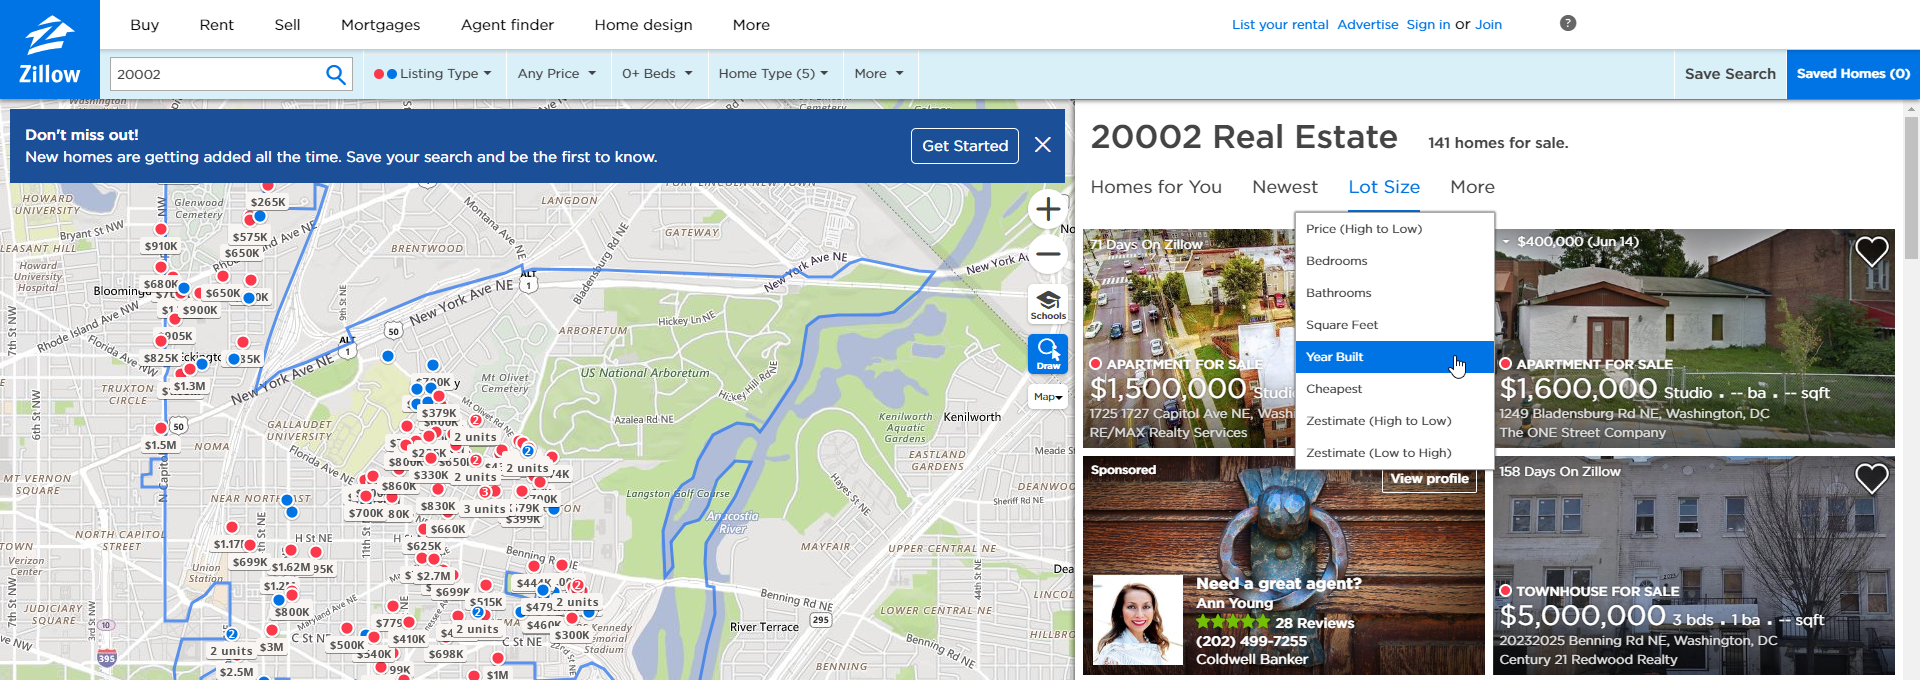 Property filter on Zillow